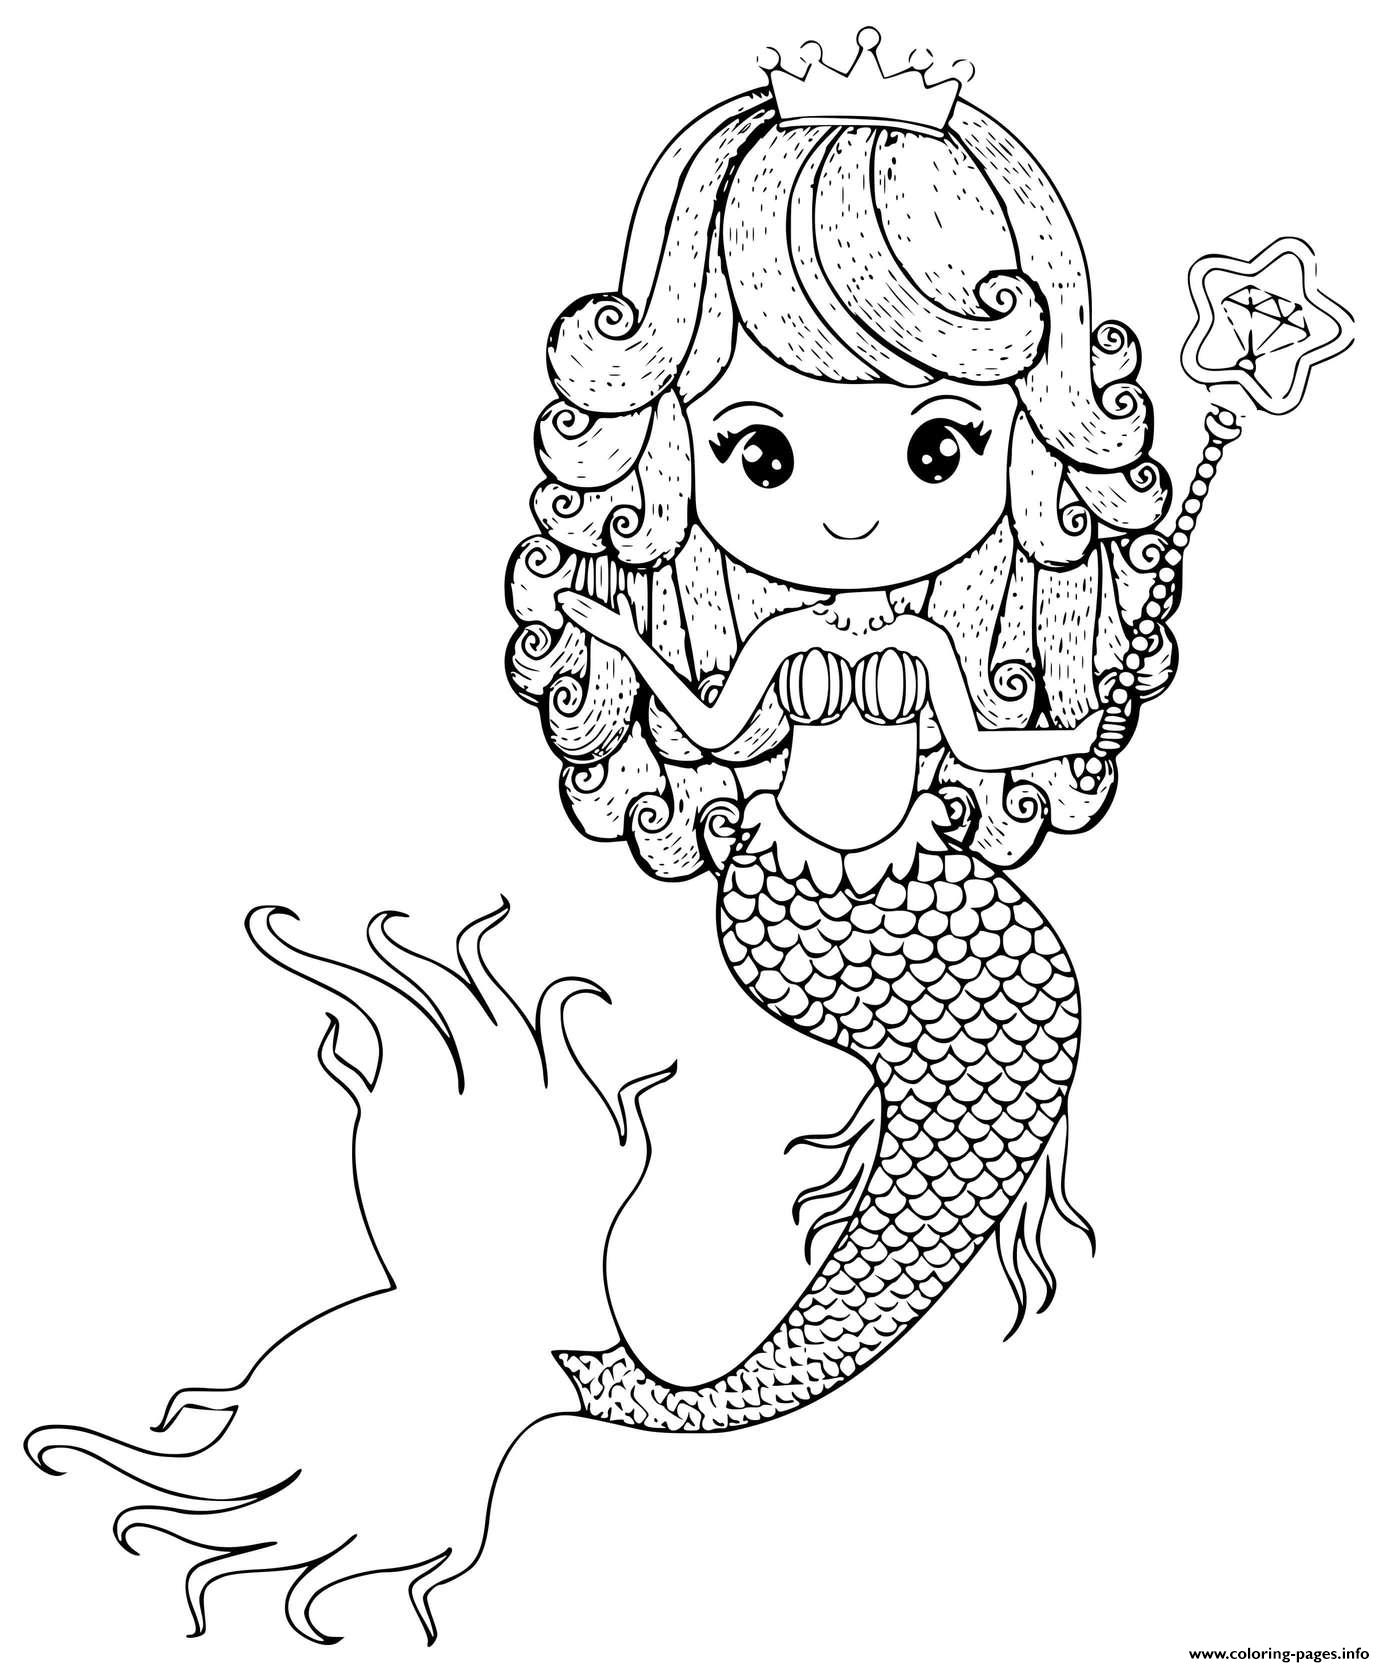 Mermaid Princess With A Wand And Crown coloring pages